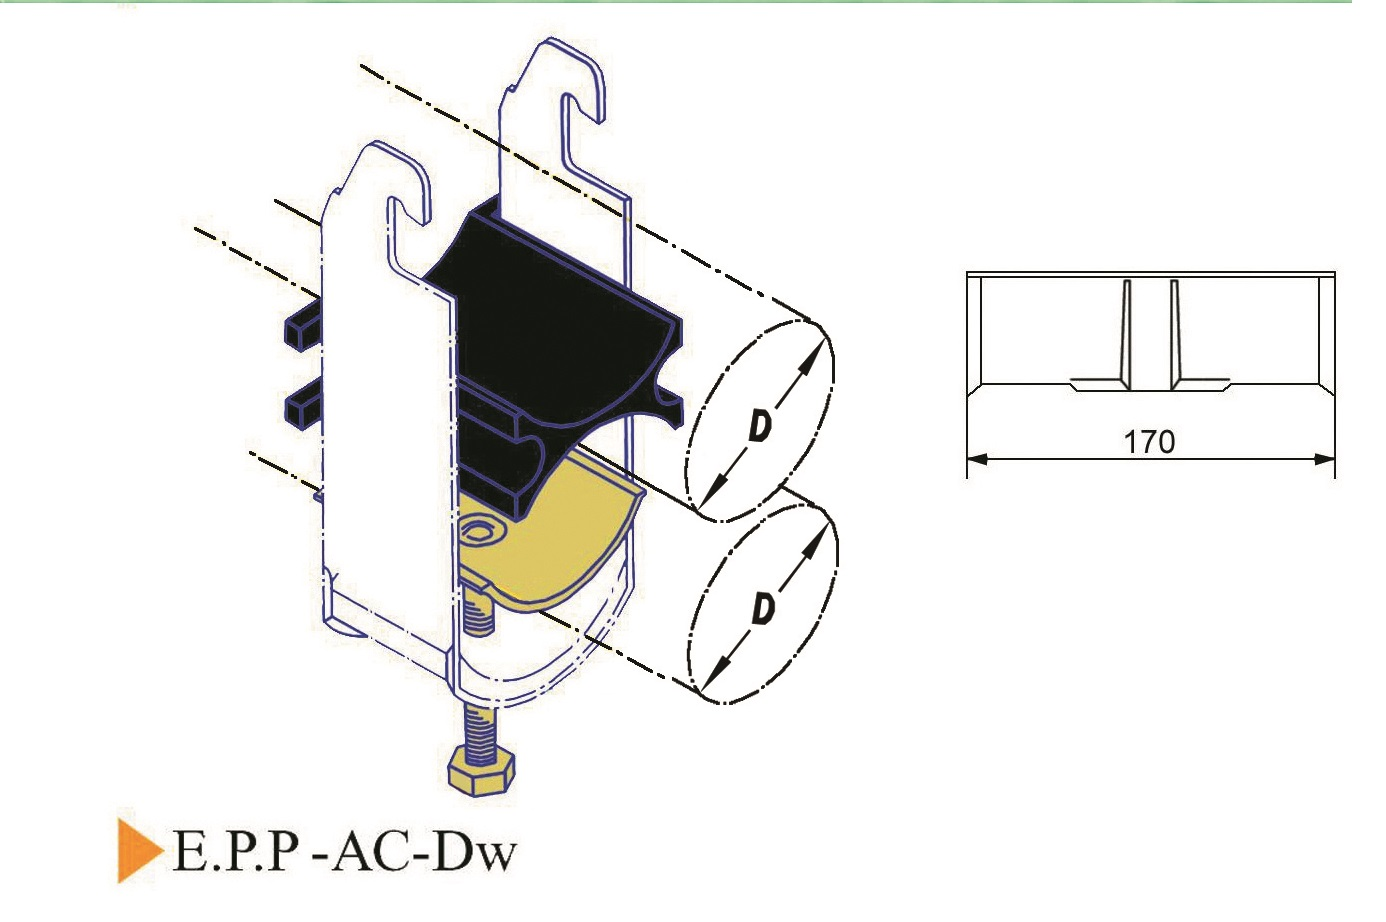 E.P.P-AC-Dw Cable Clamp